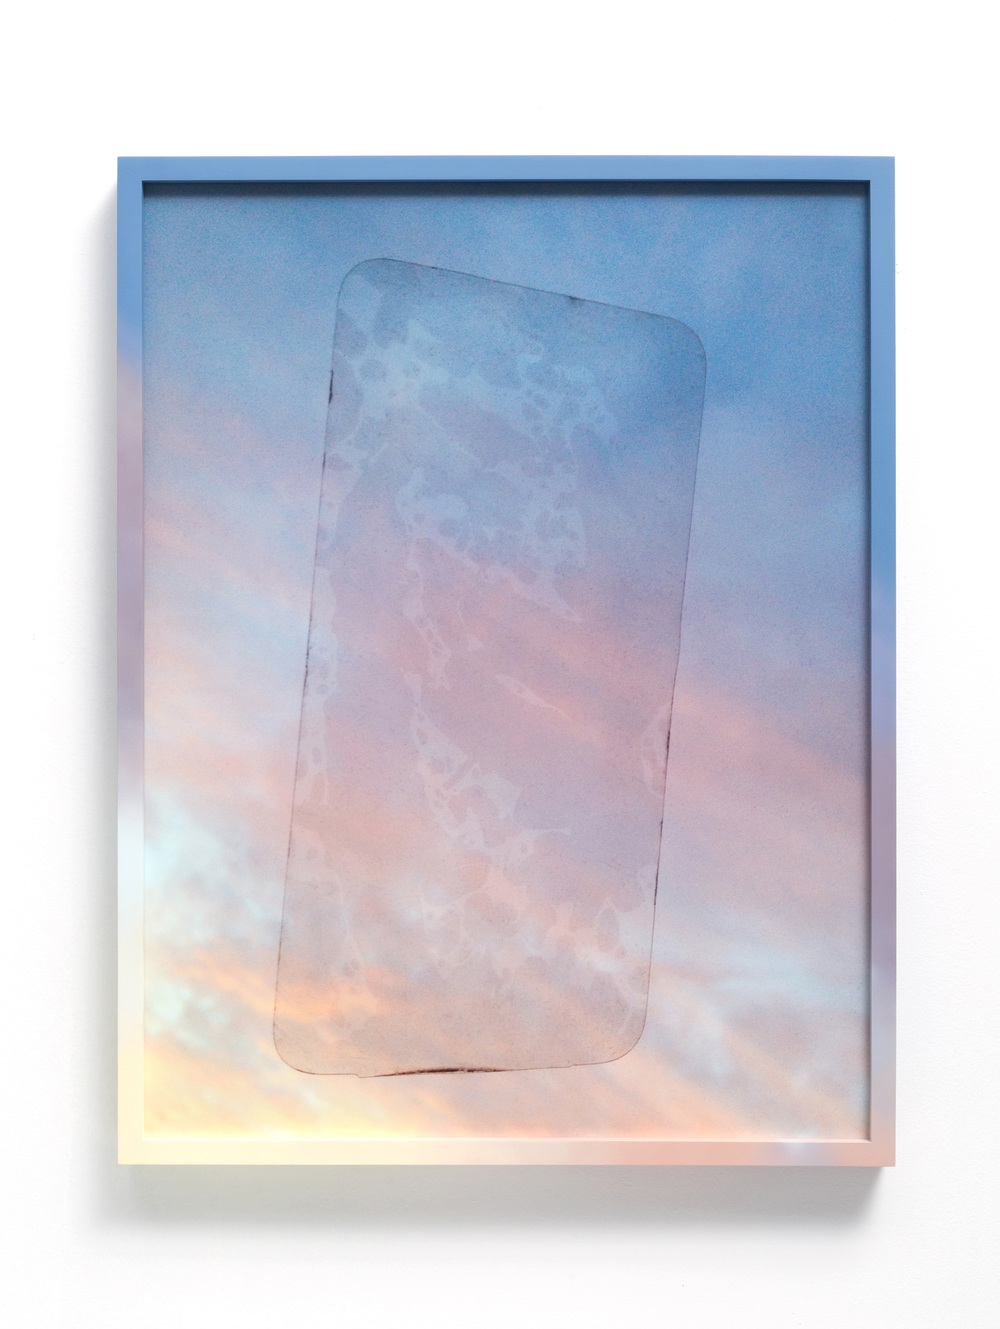 IMG 7036_2/8/14, 5:37:37 PM , 2014 Film lamination, archival pigment print, sintra, airbrushed acrylic, and wood frame 23 1/2 x 30 1/2 x 2 in (60 x 78 x 5 cm)